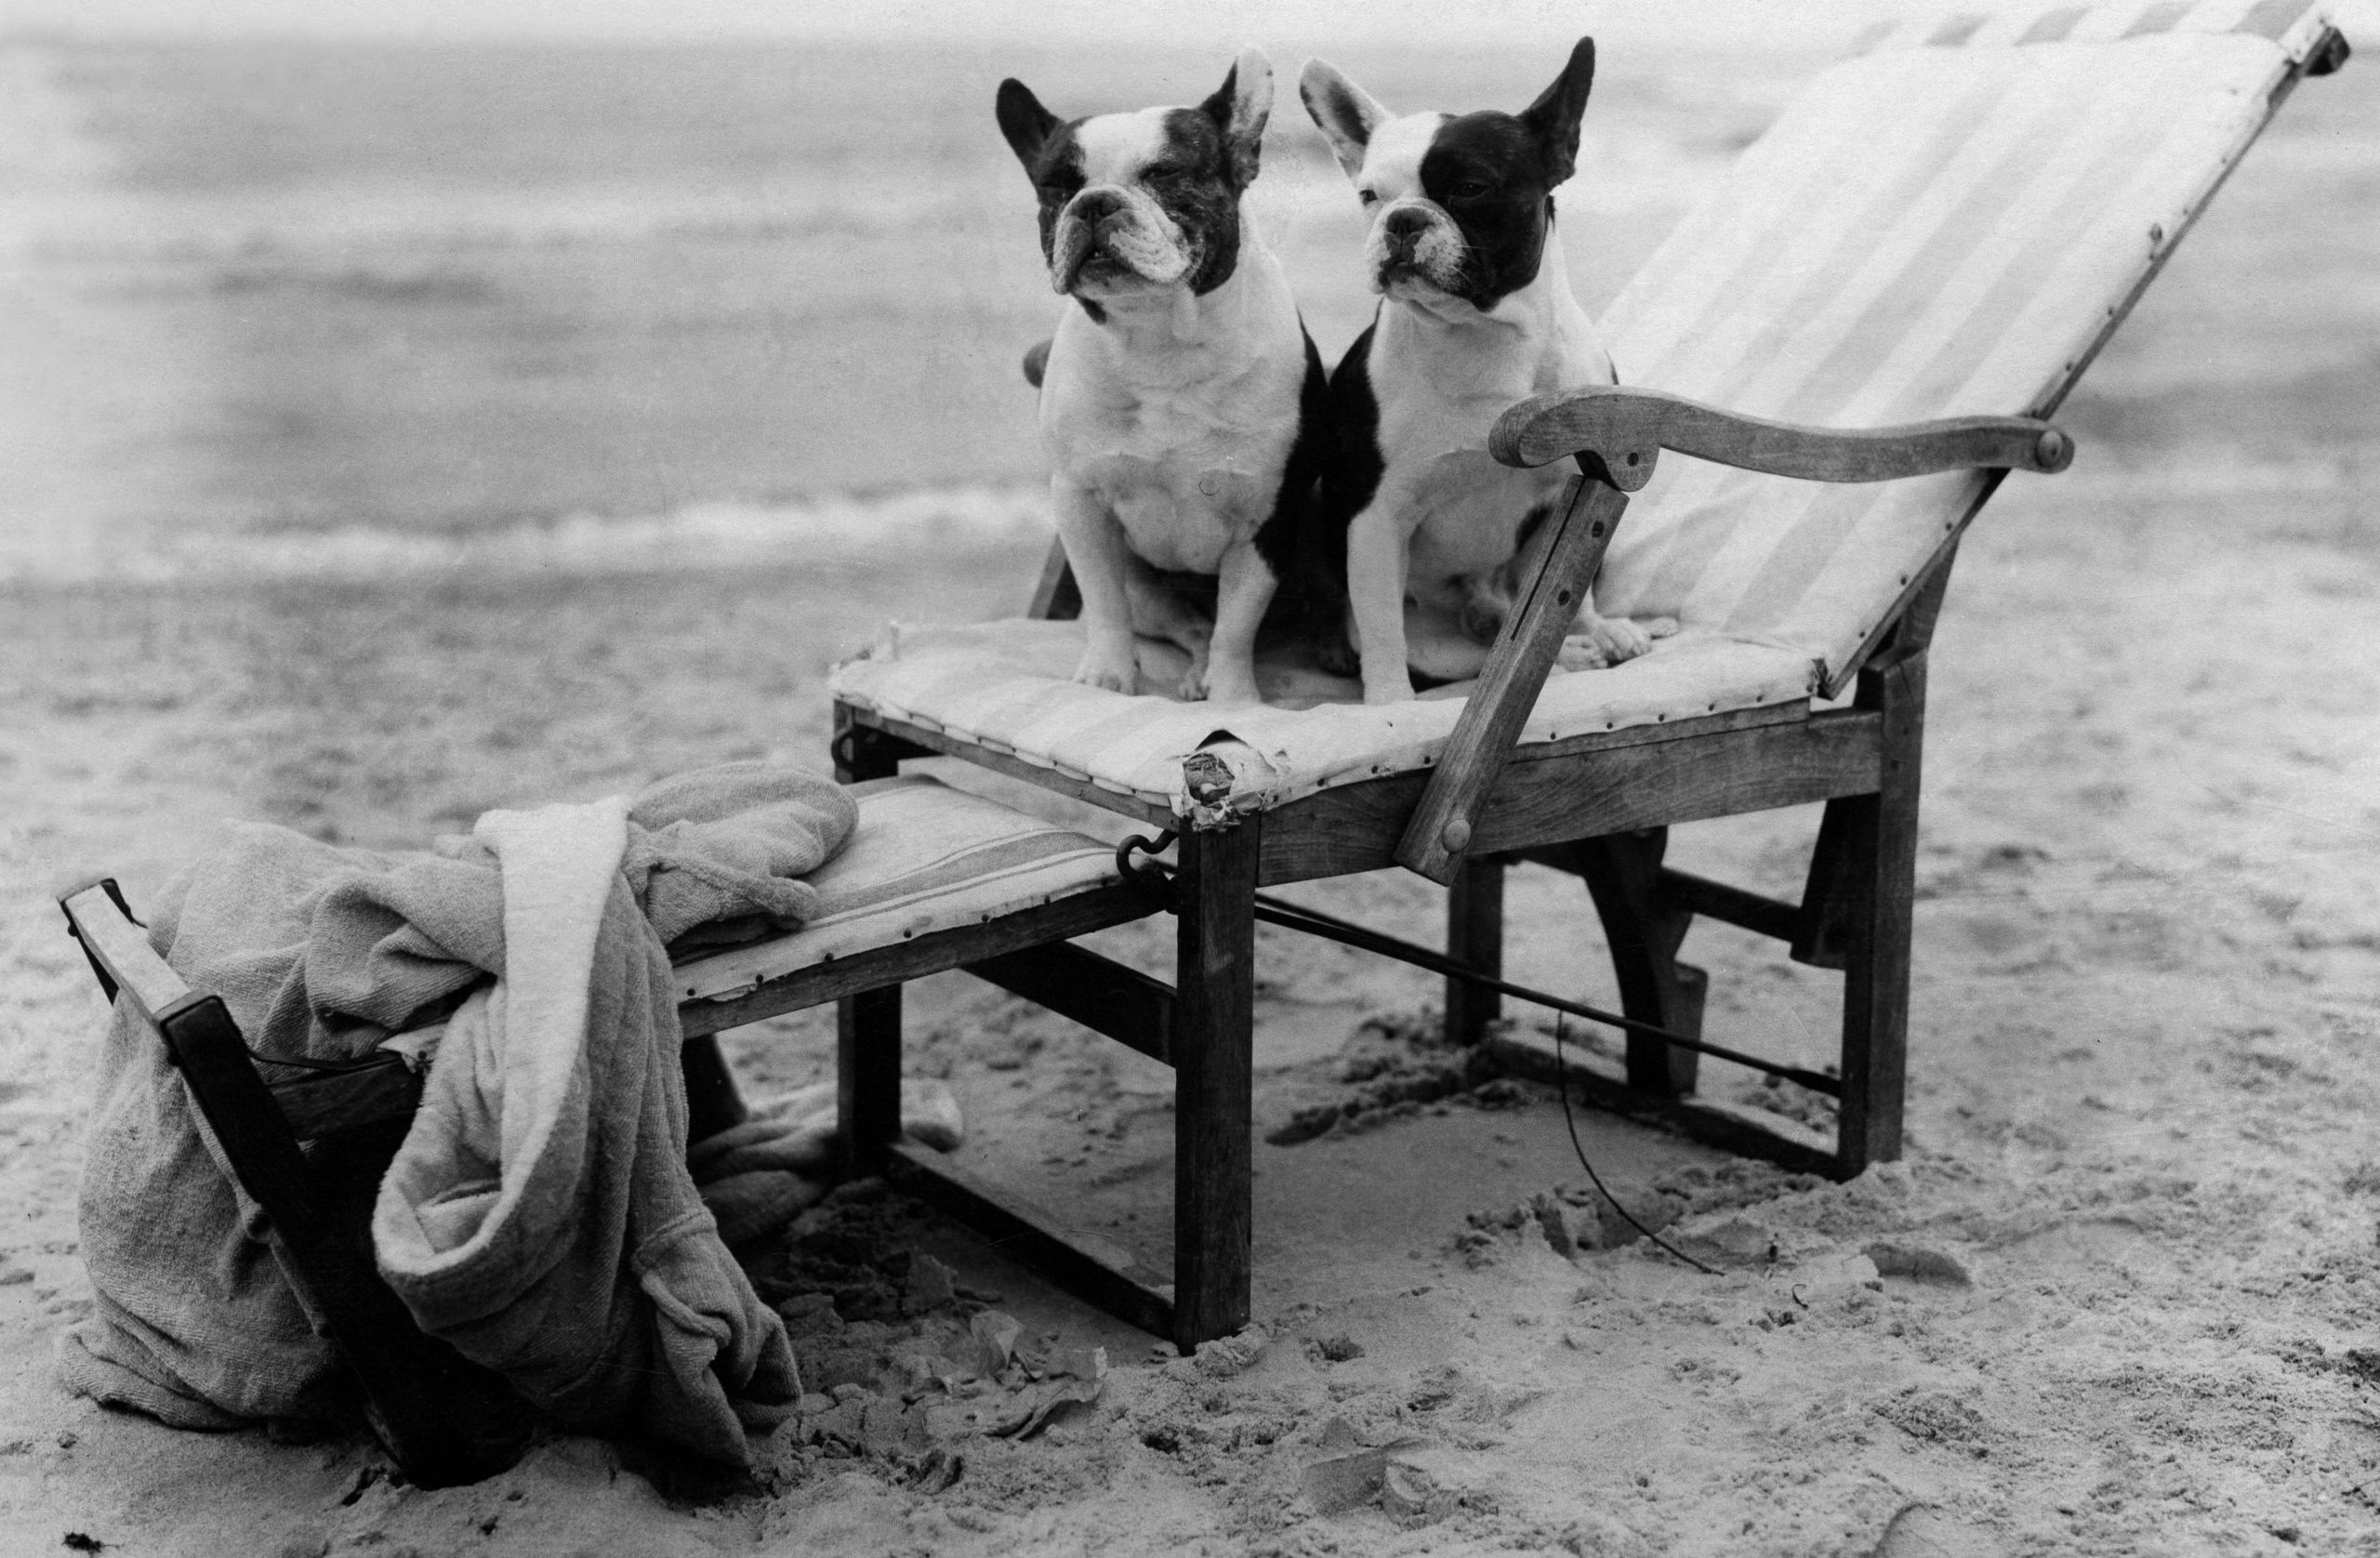 animals: two french bulldogs in a deck chair on the beach - 1922 - Photographer: Frankl - Published by: 'Die Dame' 20/1922 Vintage property of ullstein bild